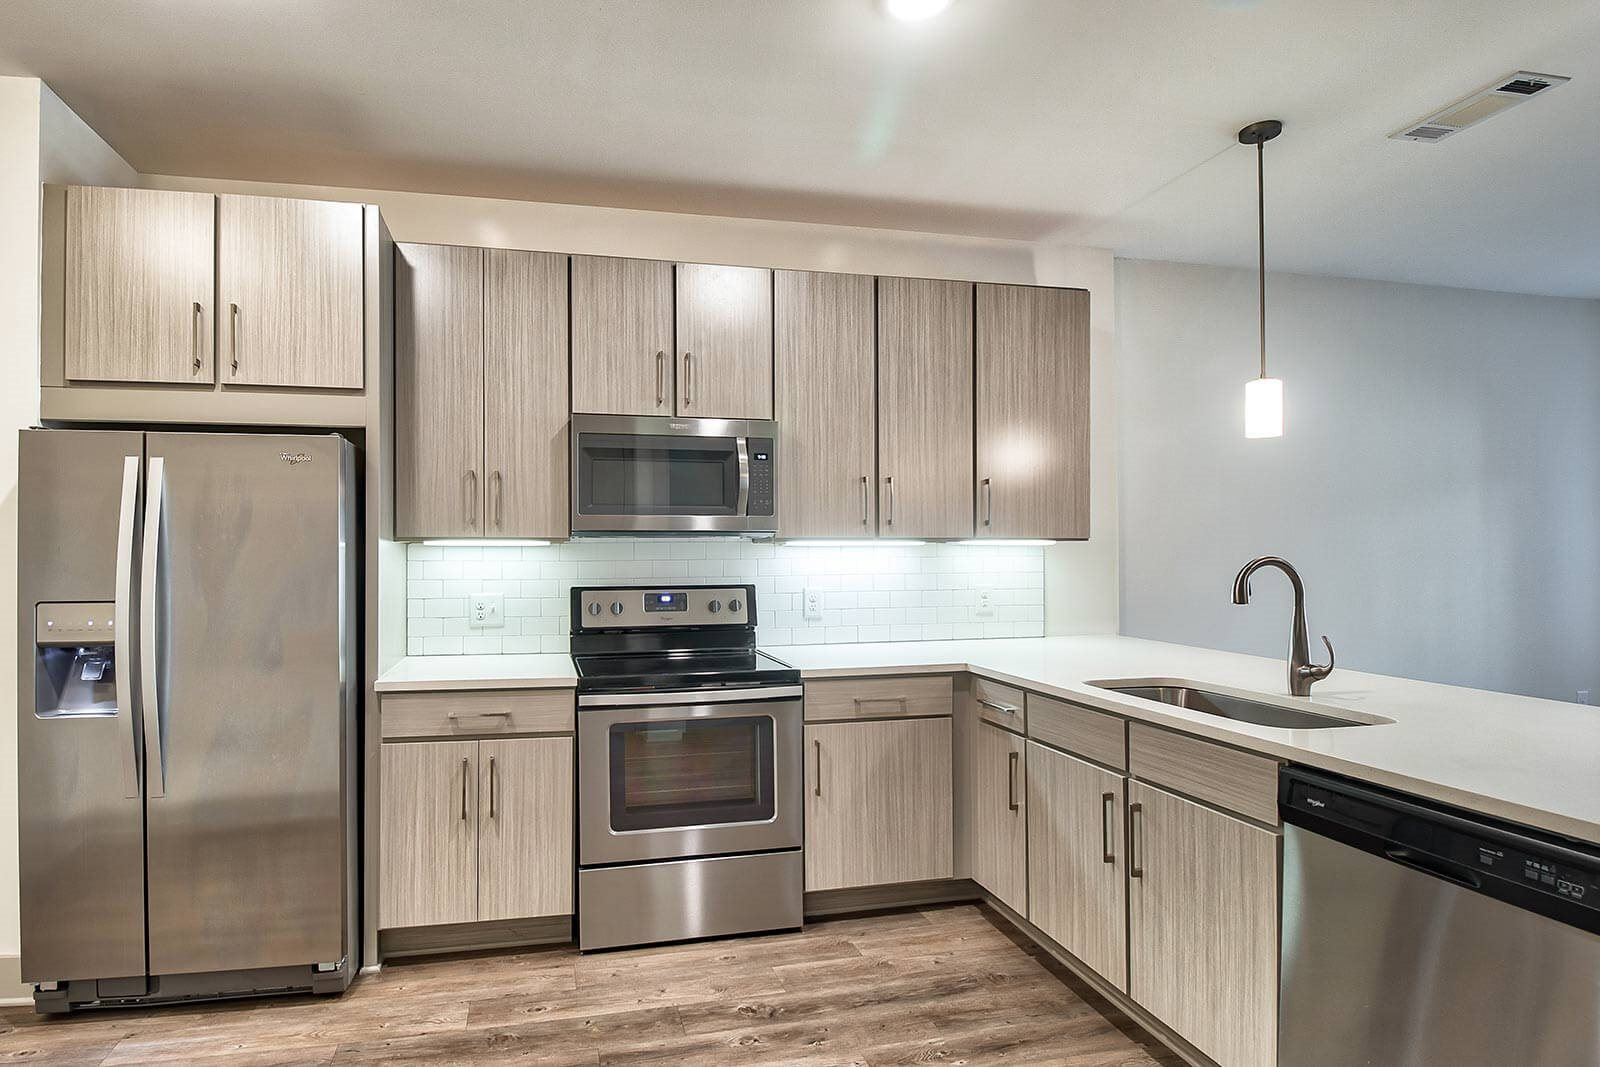 Stainless Steel Appliances and Tile Backsplash in Kitchens at Windsor Parkview, 5070 Peachtree Boulevard, GA